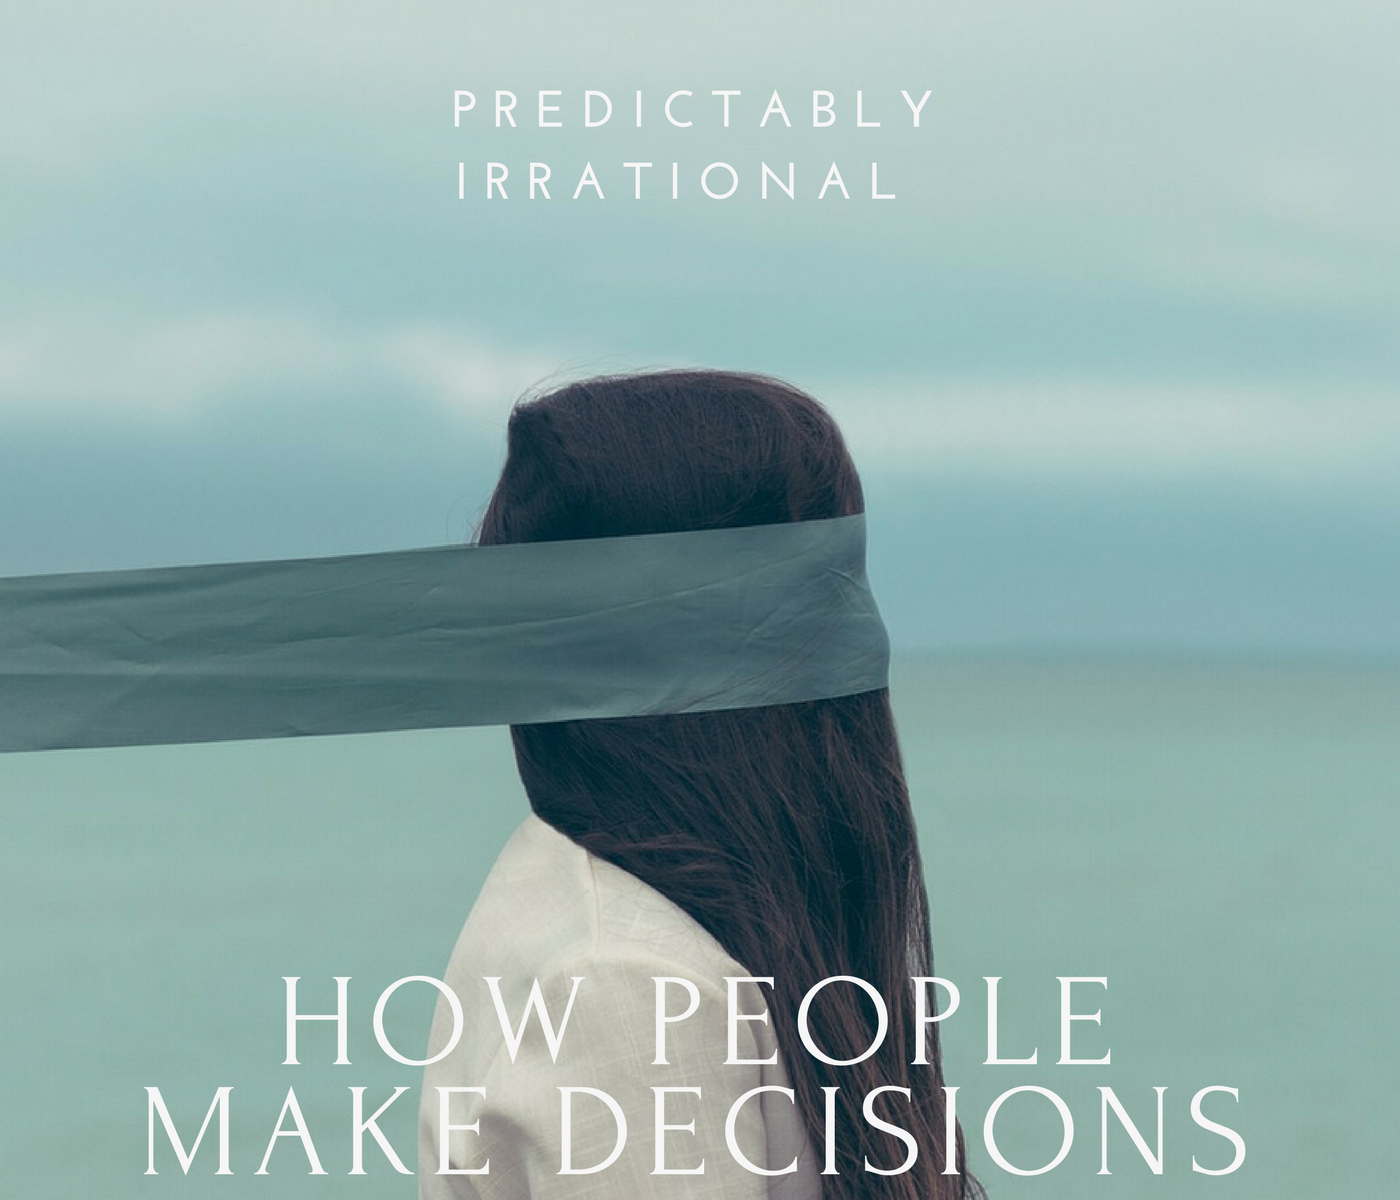 Predictably Irrational - How People Make Decisions